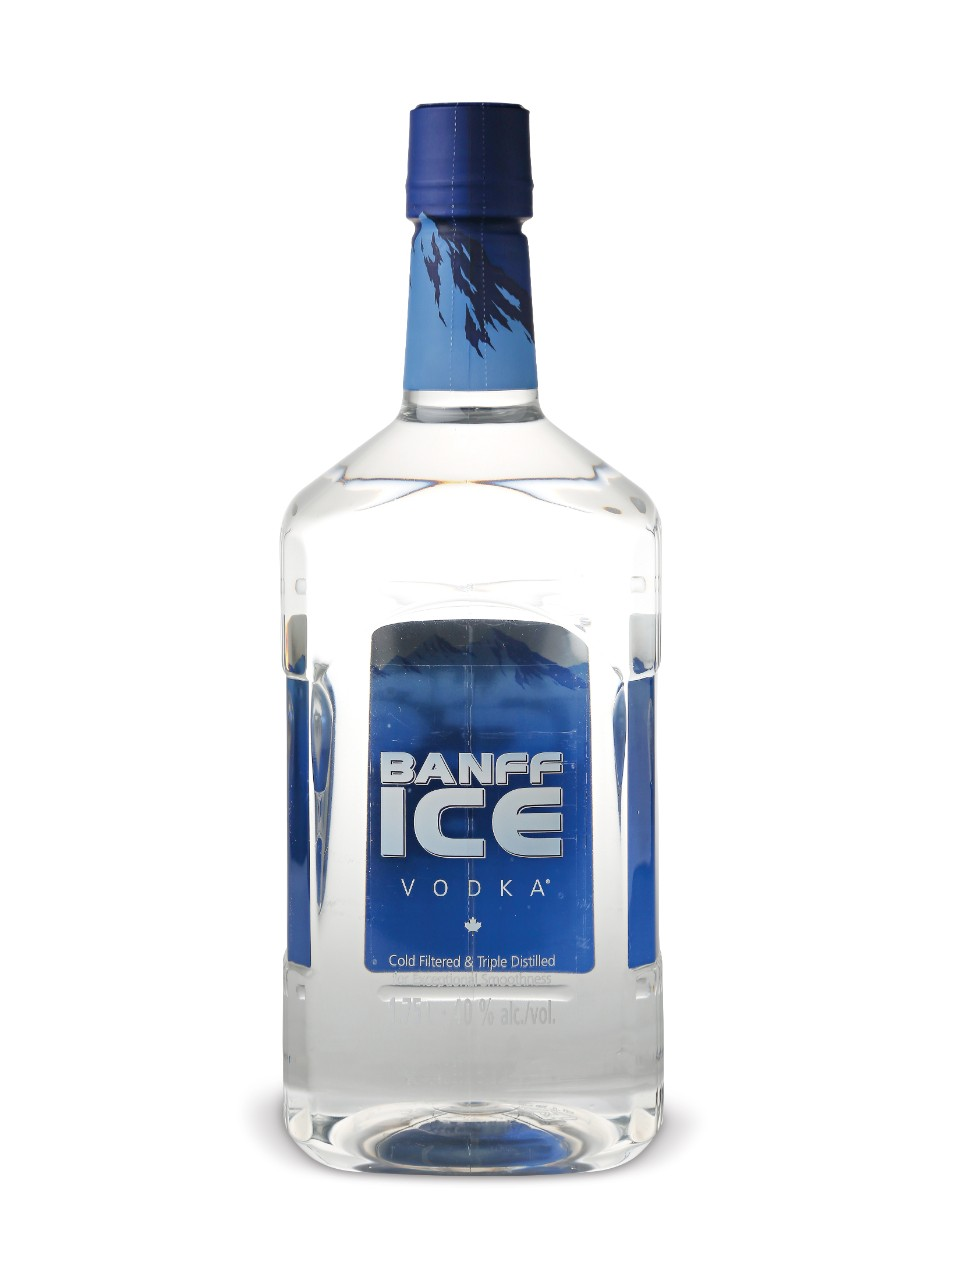 Banff Ice Vodka (PET) from LCBO